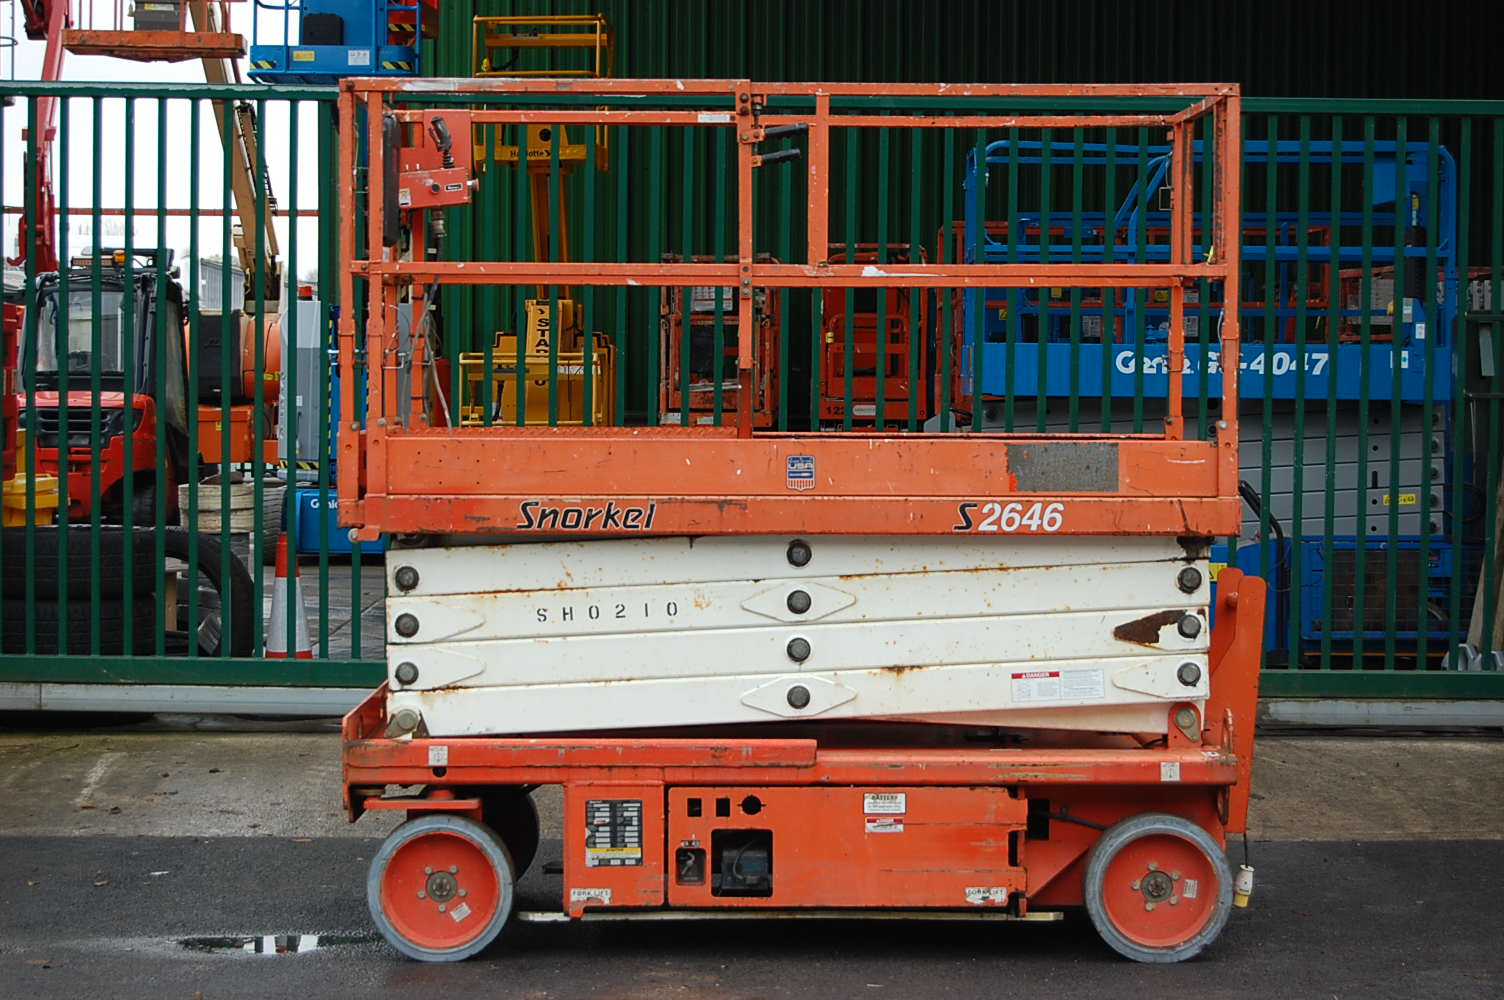 Snorkel S2646E Electric Scissor Lift